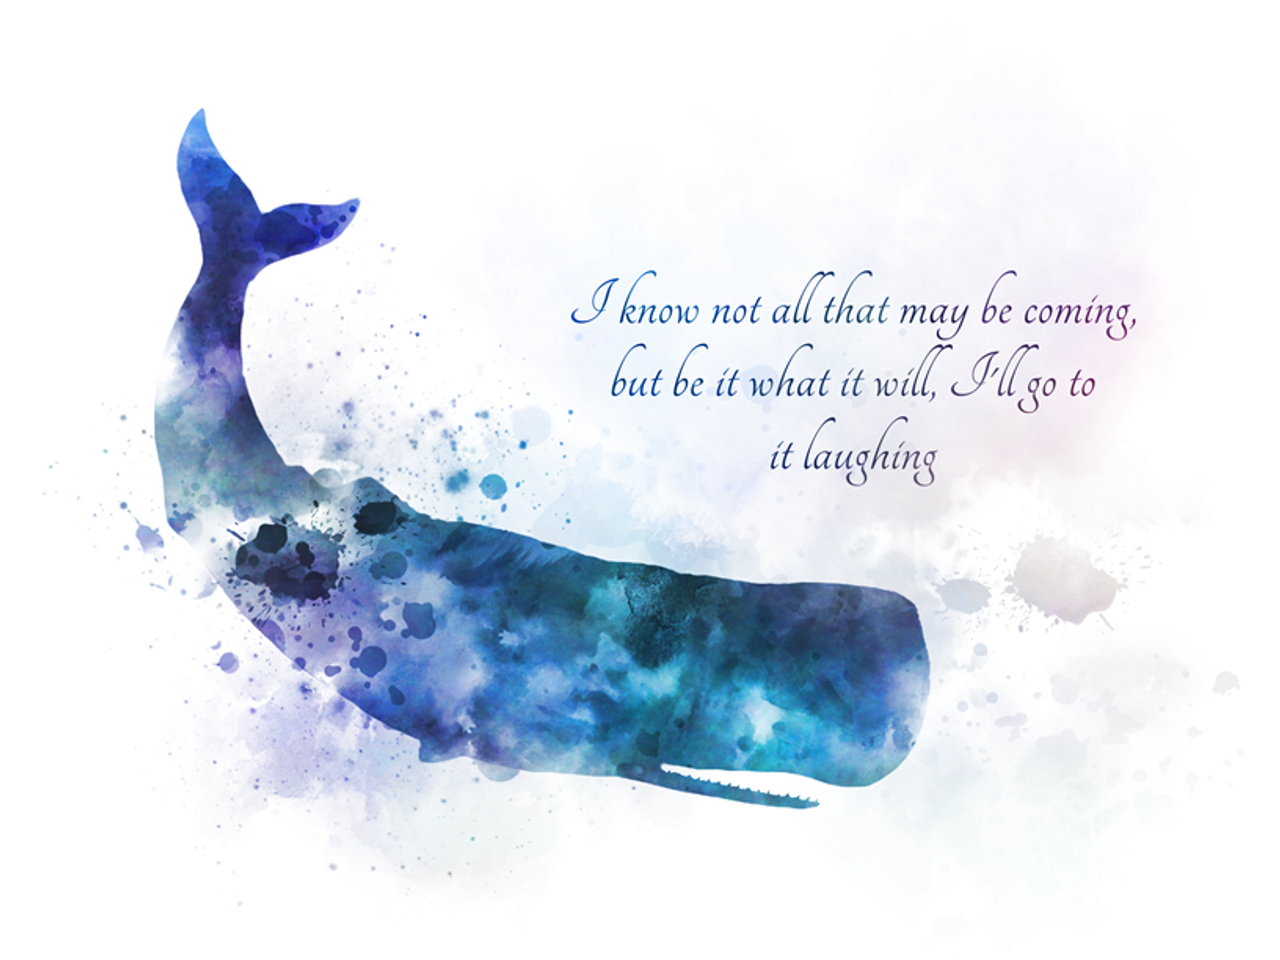 moby dick quote art print whale literature inspirational gift